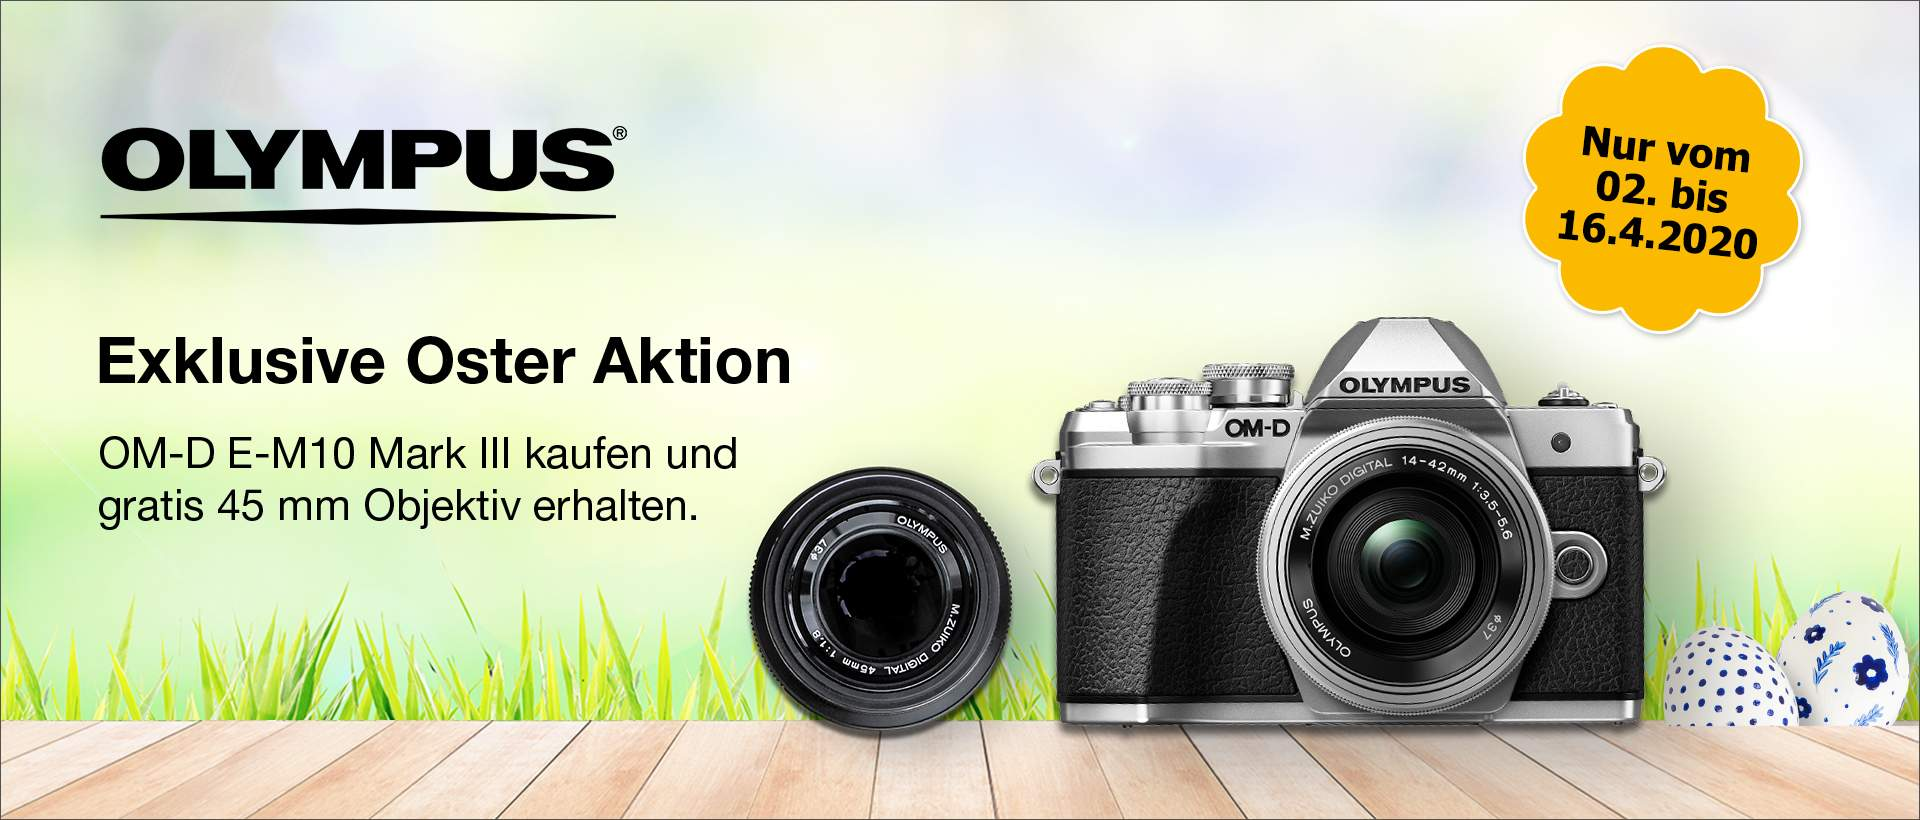 Olympus Oster Aktion